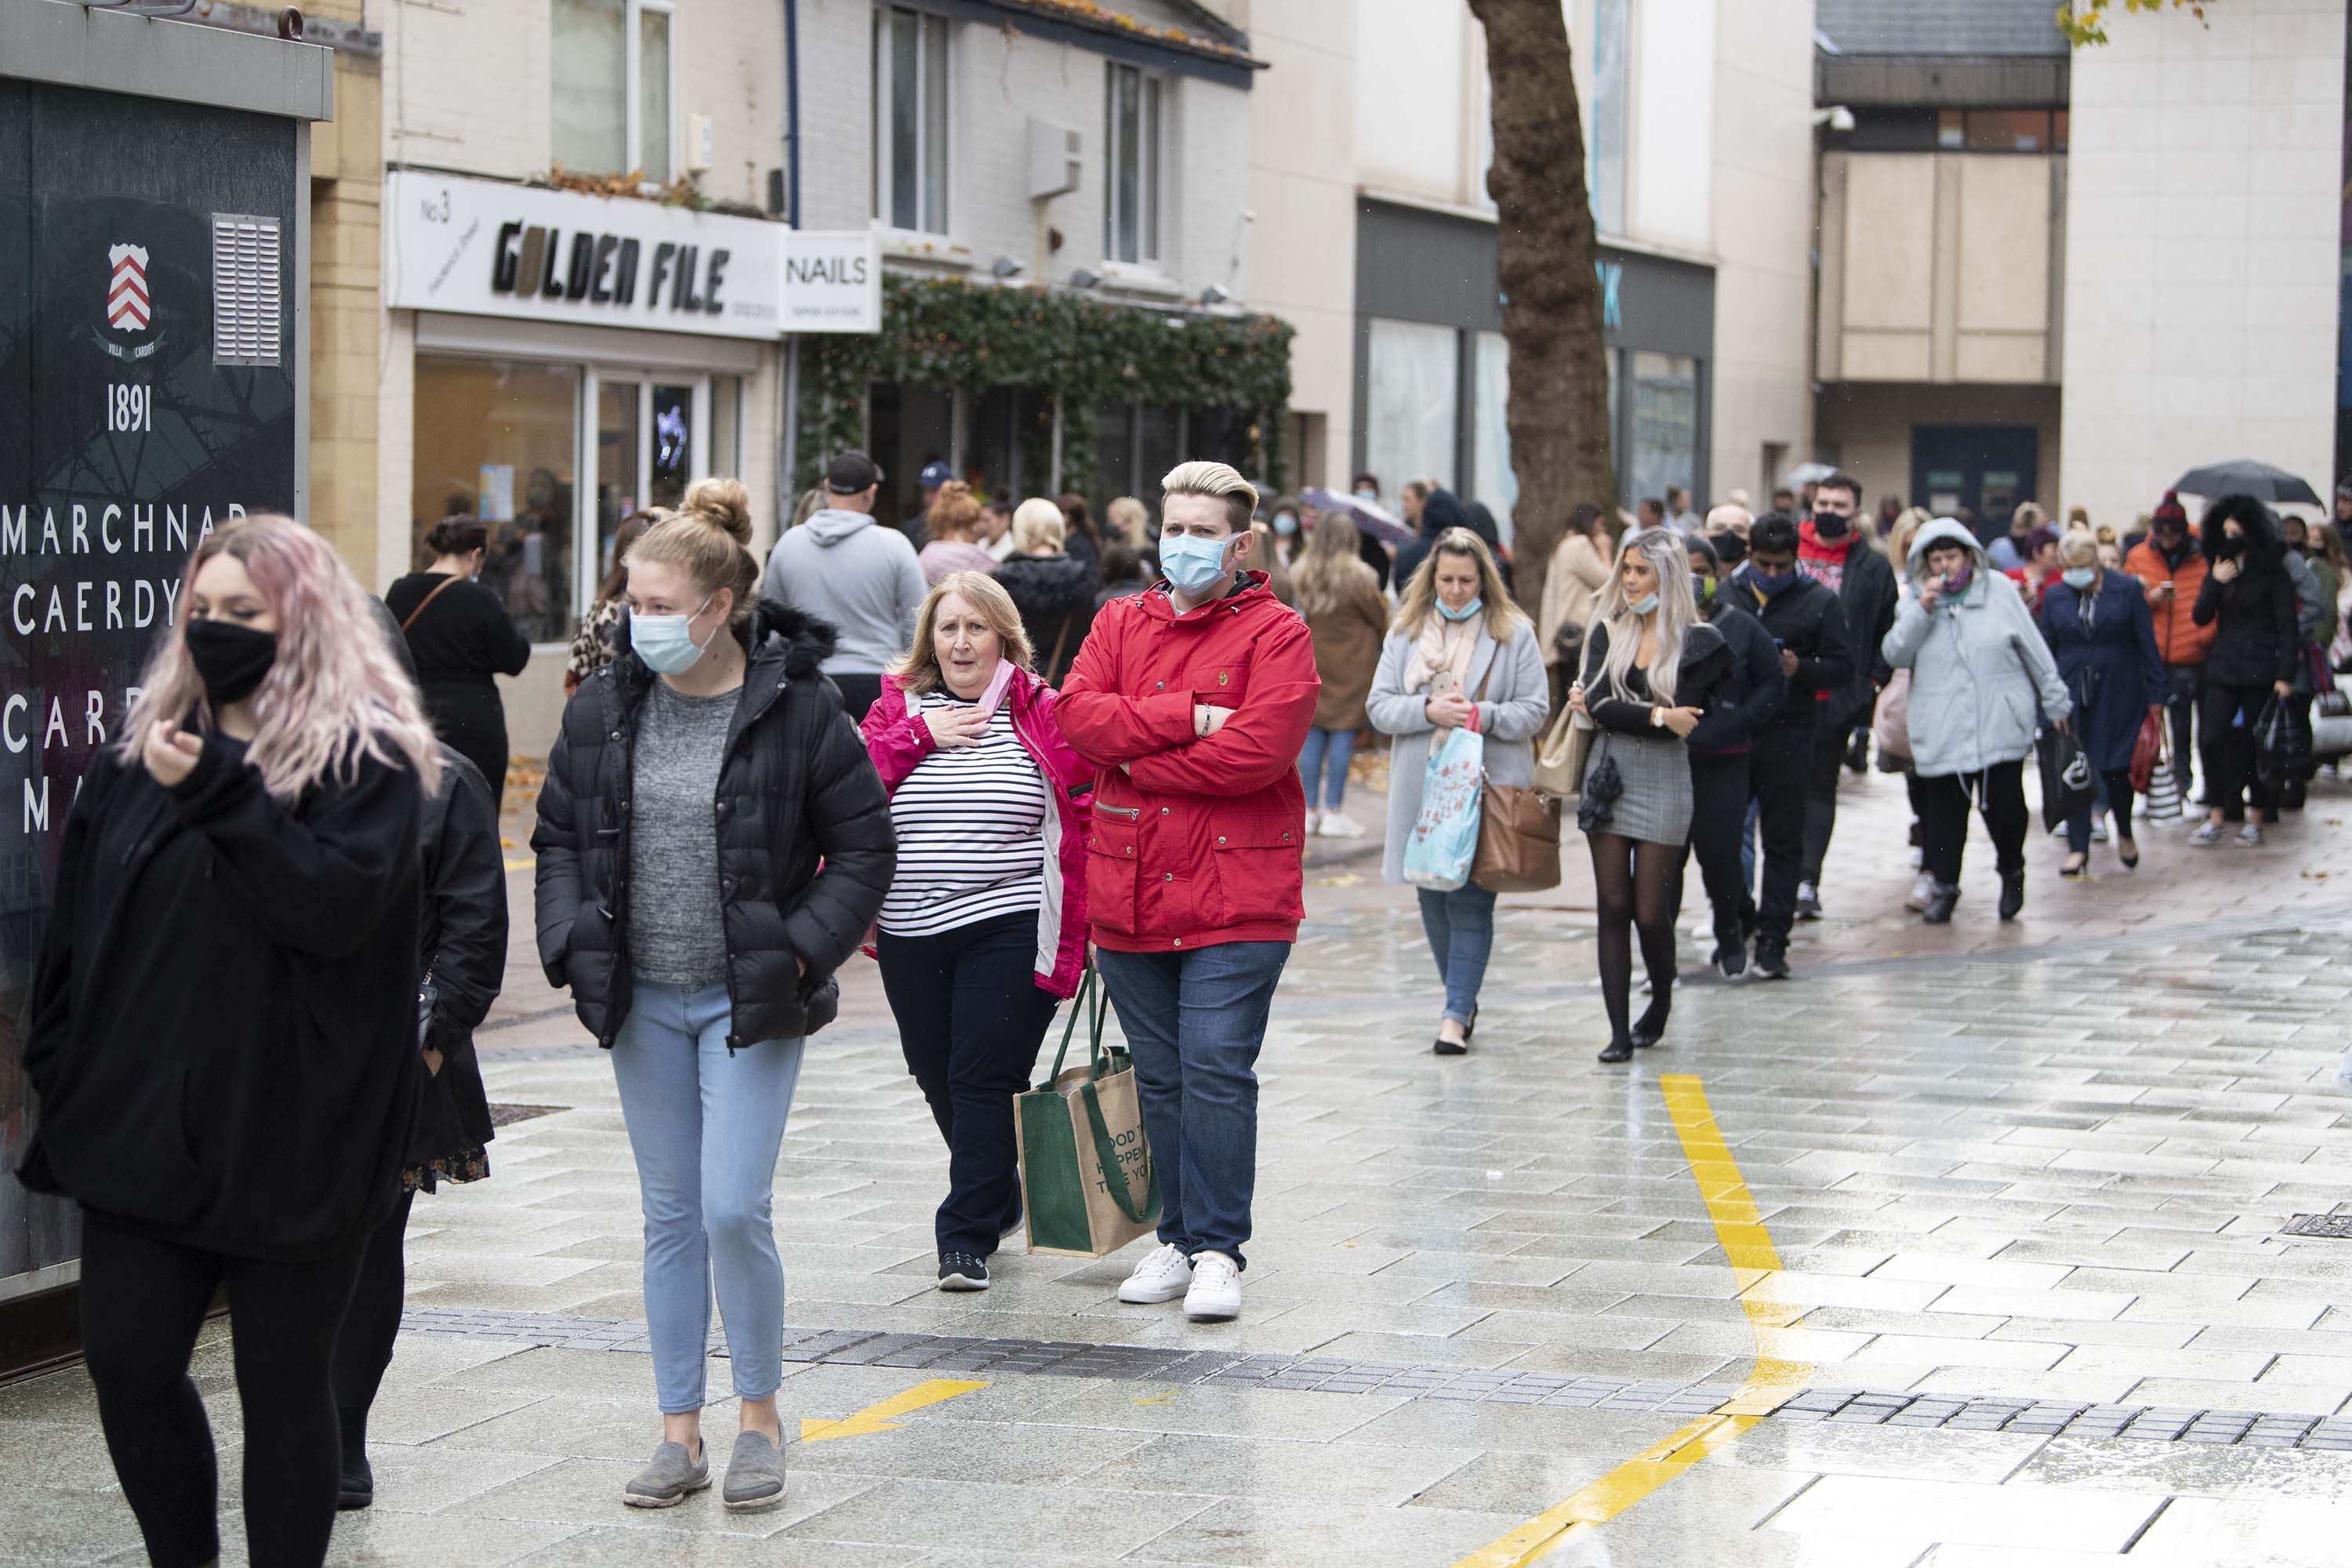 Shoppers line up outside a store in Cardiff, Wales, on November 9.